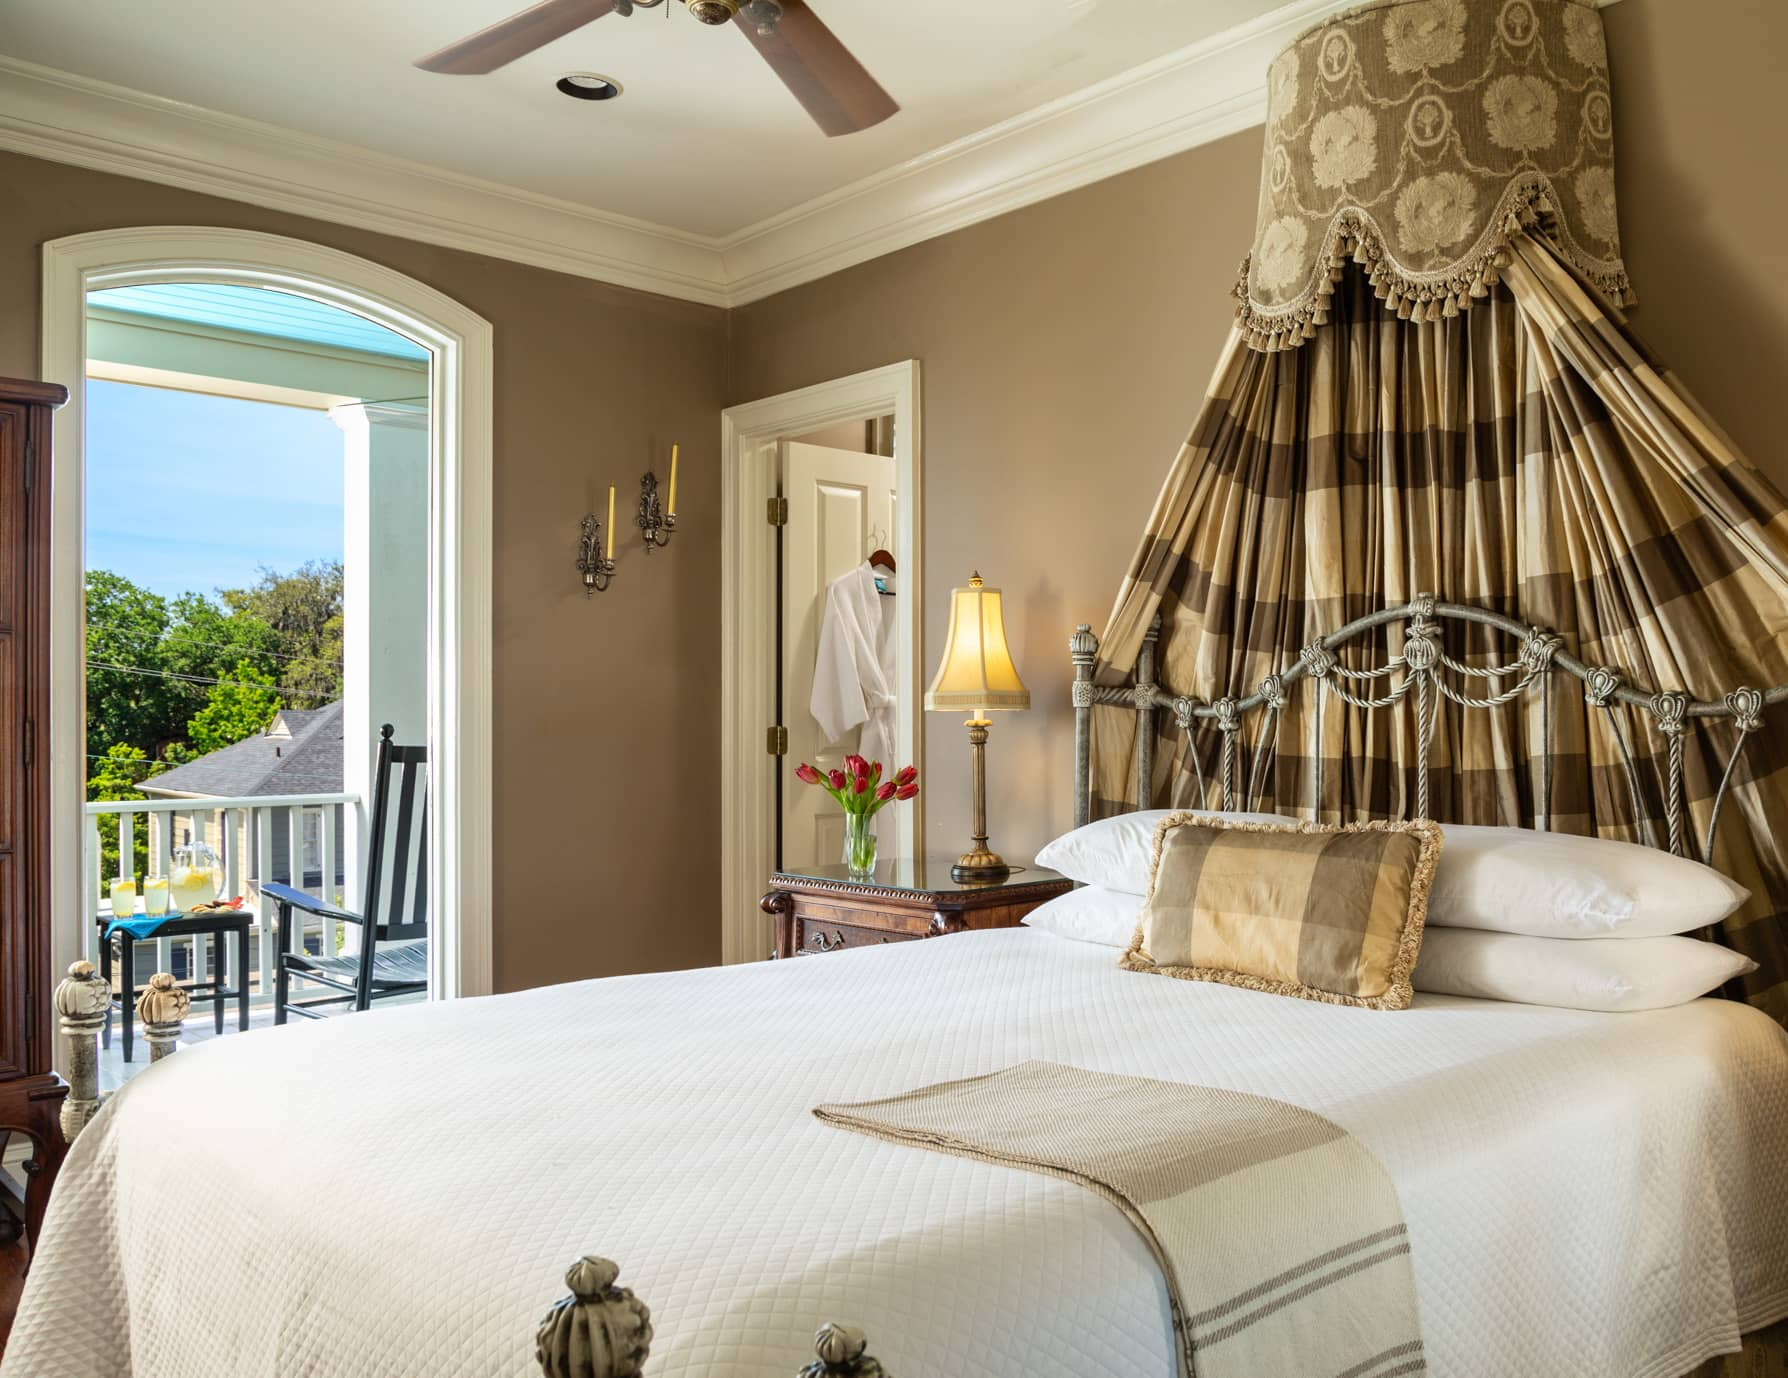 Queen bed in the Lafayette room with a ceiling fan and a door leading to a private balcony